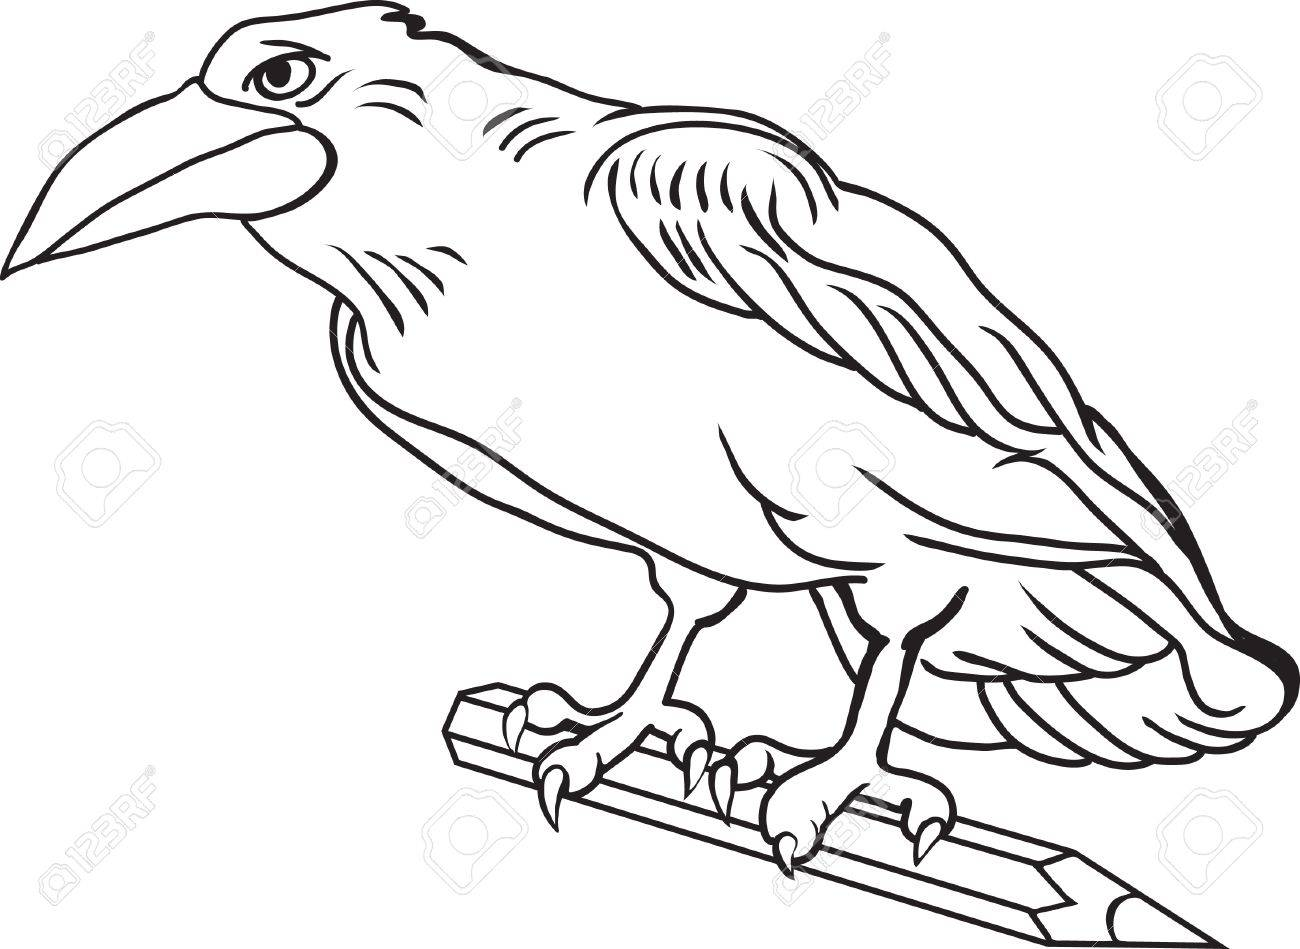 Contour drawing crow bird holds a pencil